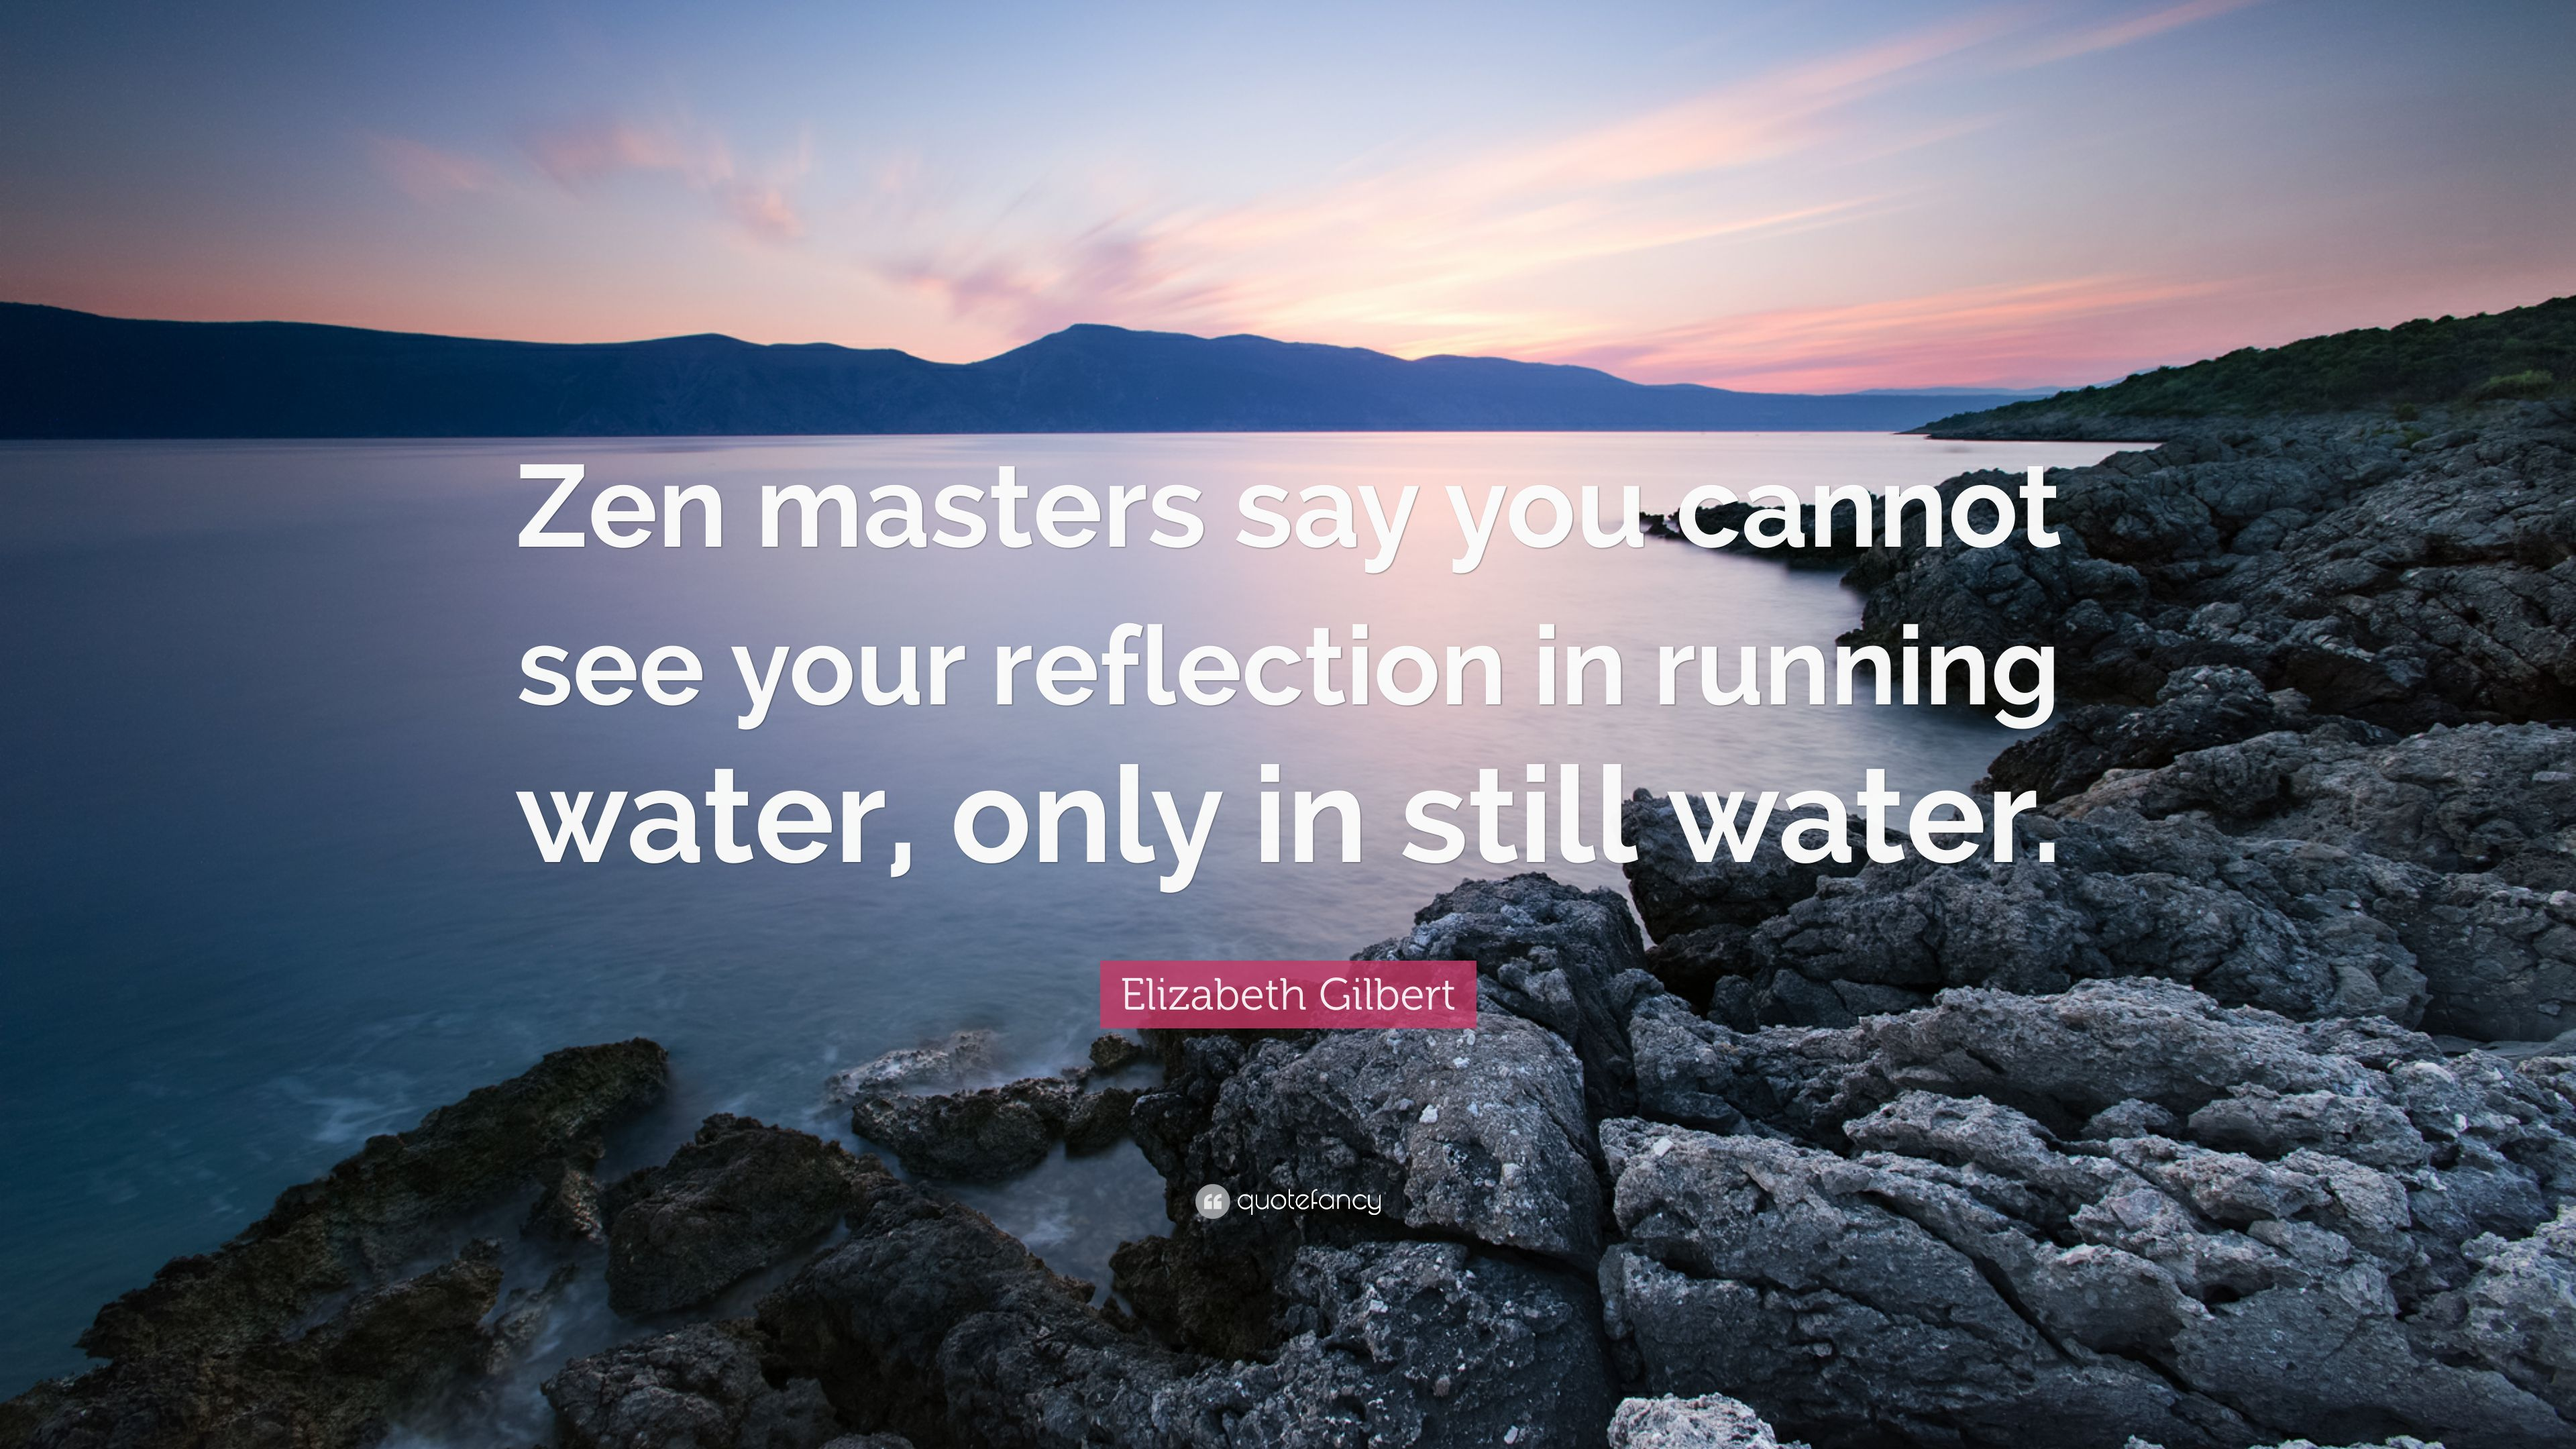 Elizabeth Gilbert Quote Zen Masters Say You Cannot See Your Reflection In Running Water